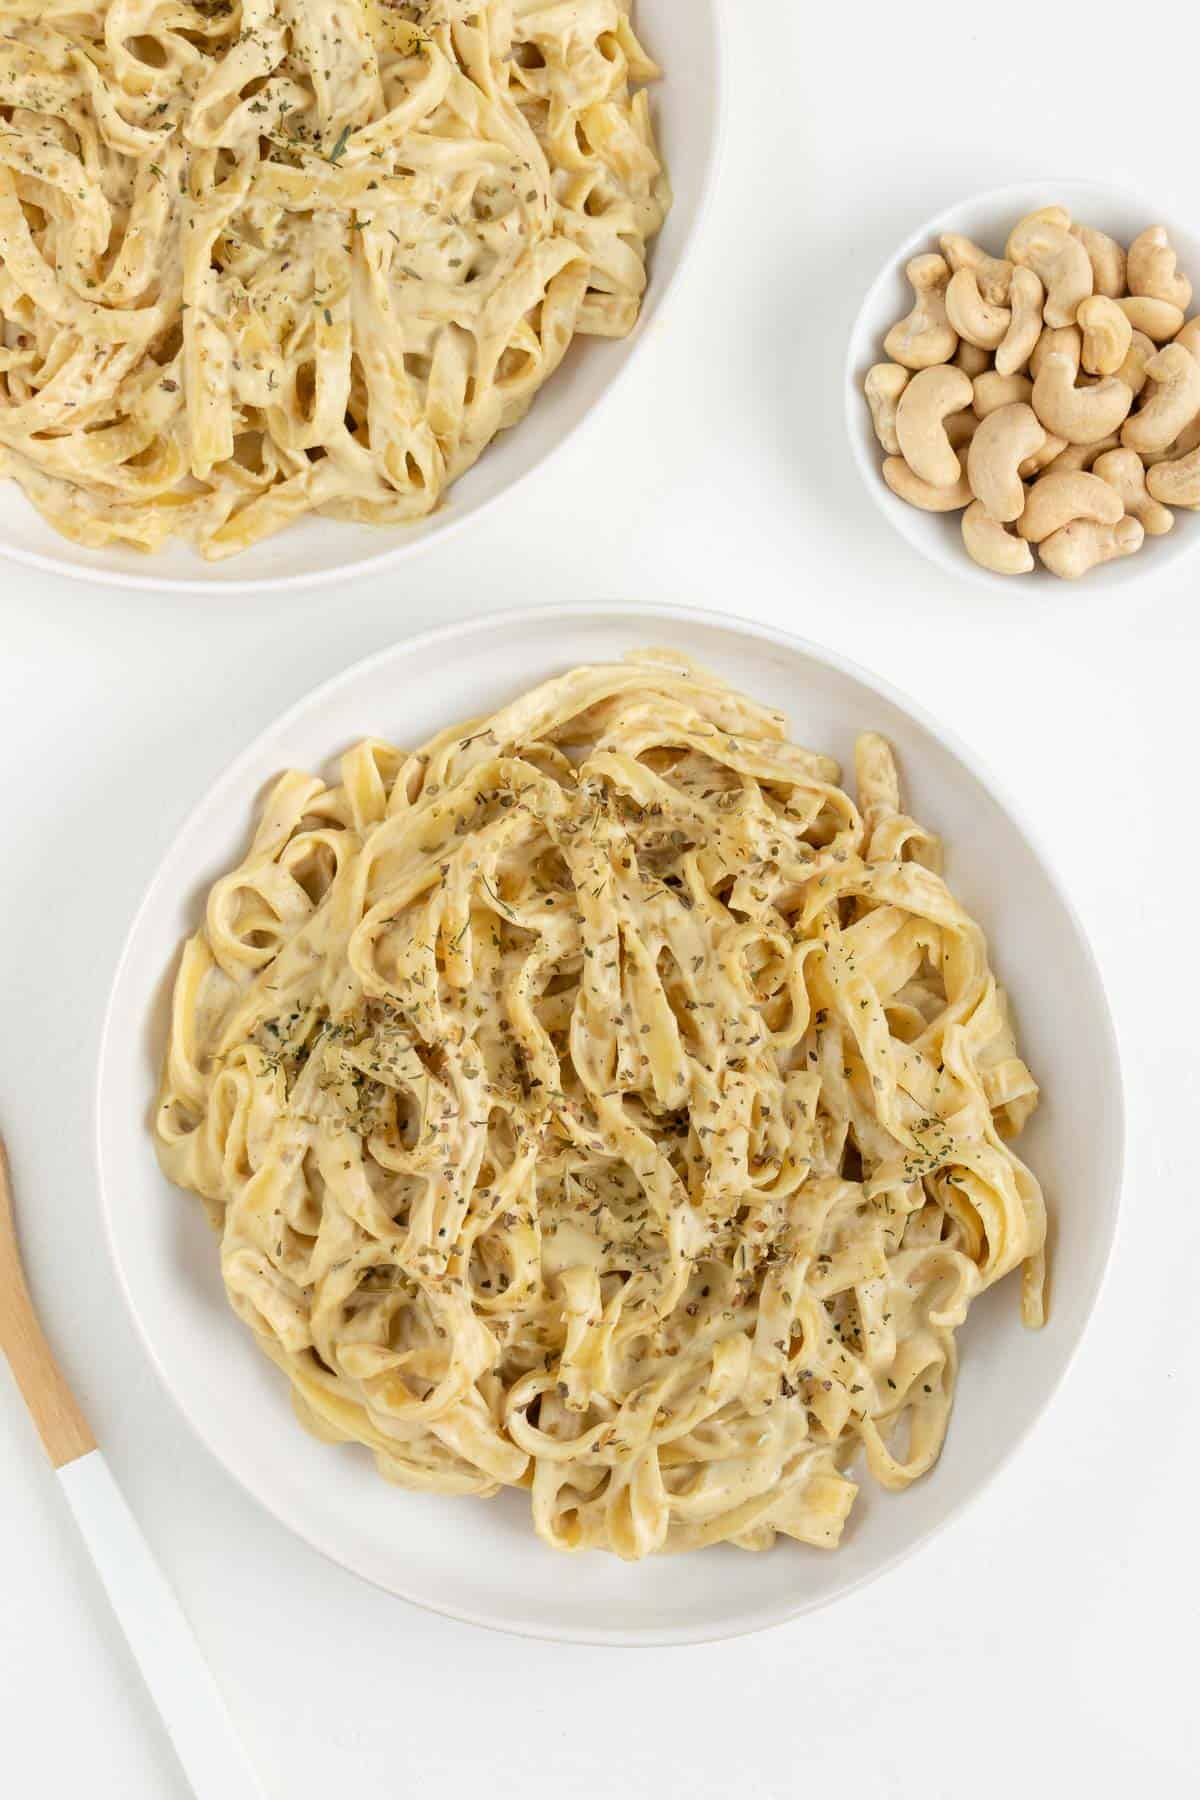 vegan fettuccine alfredo pasta inside two white bowls beside cashews and a wooden fork